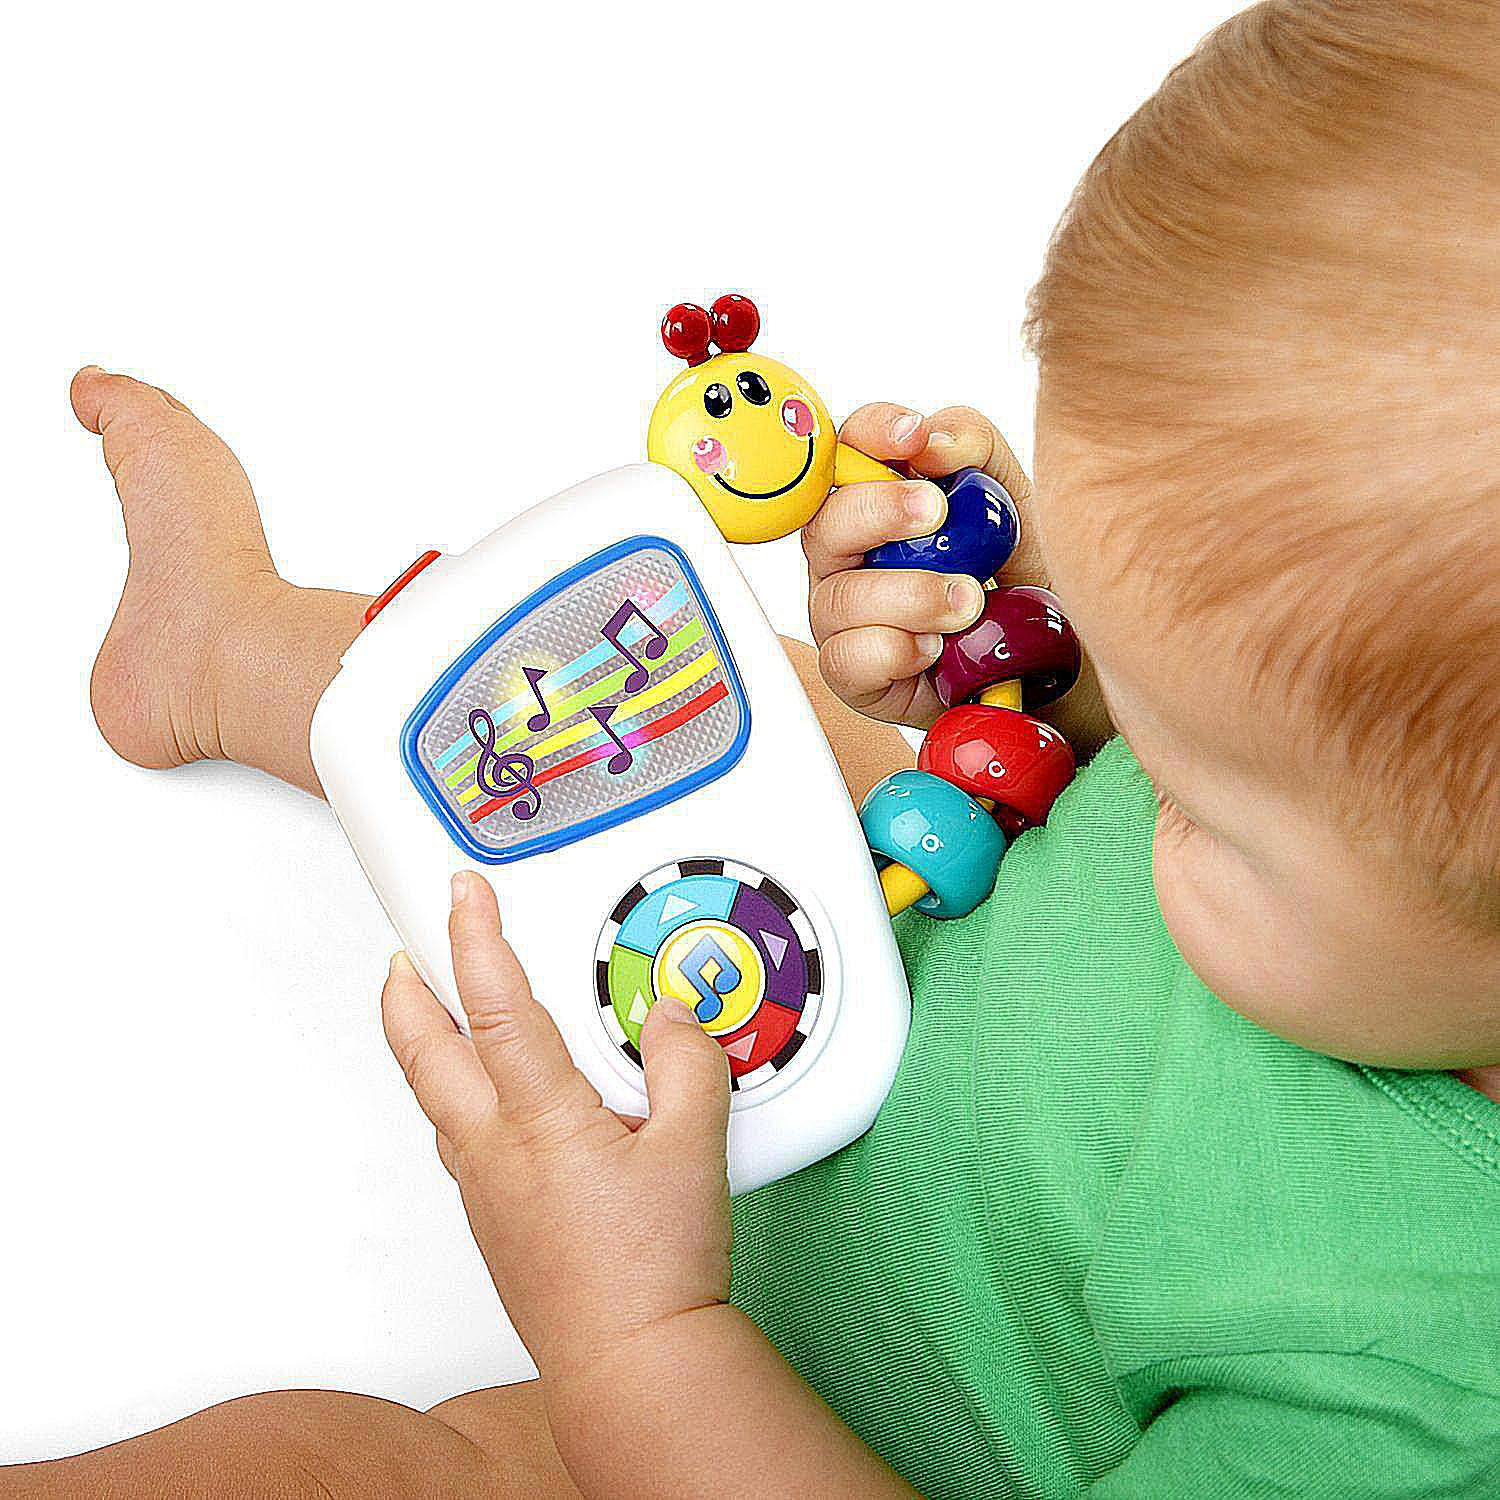 Top Toy and Gift Ideas for Infants